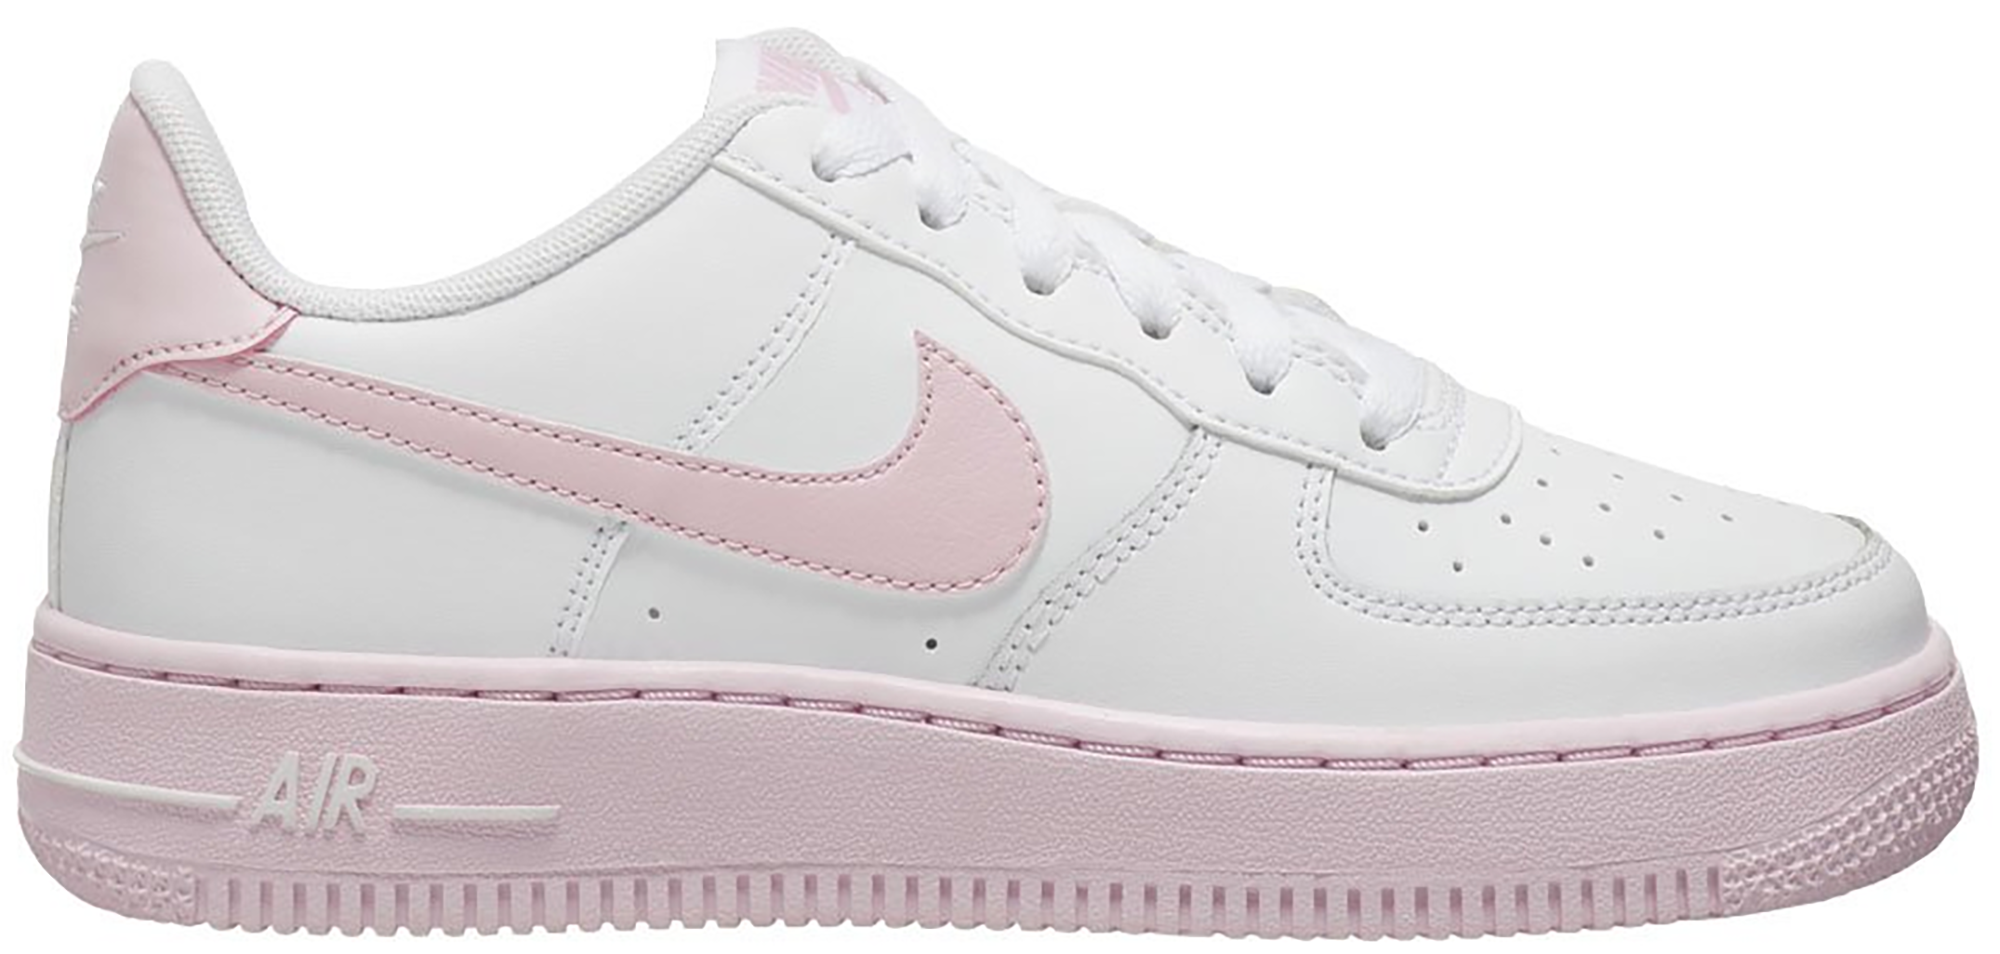 pink and white air force ones